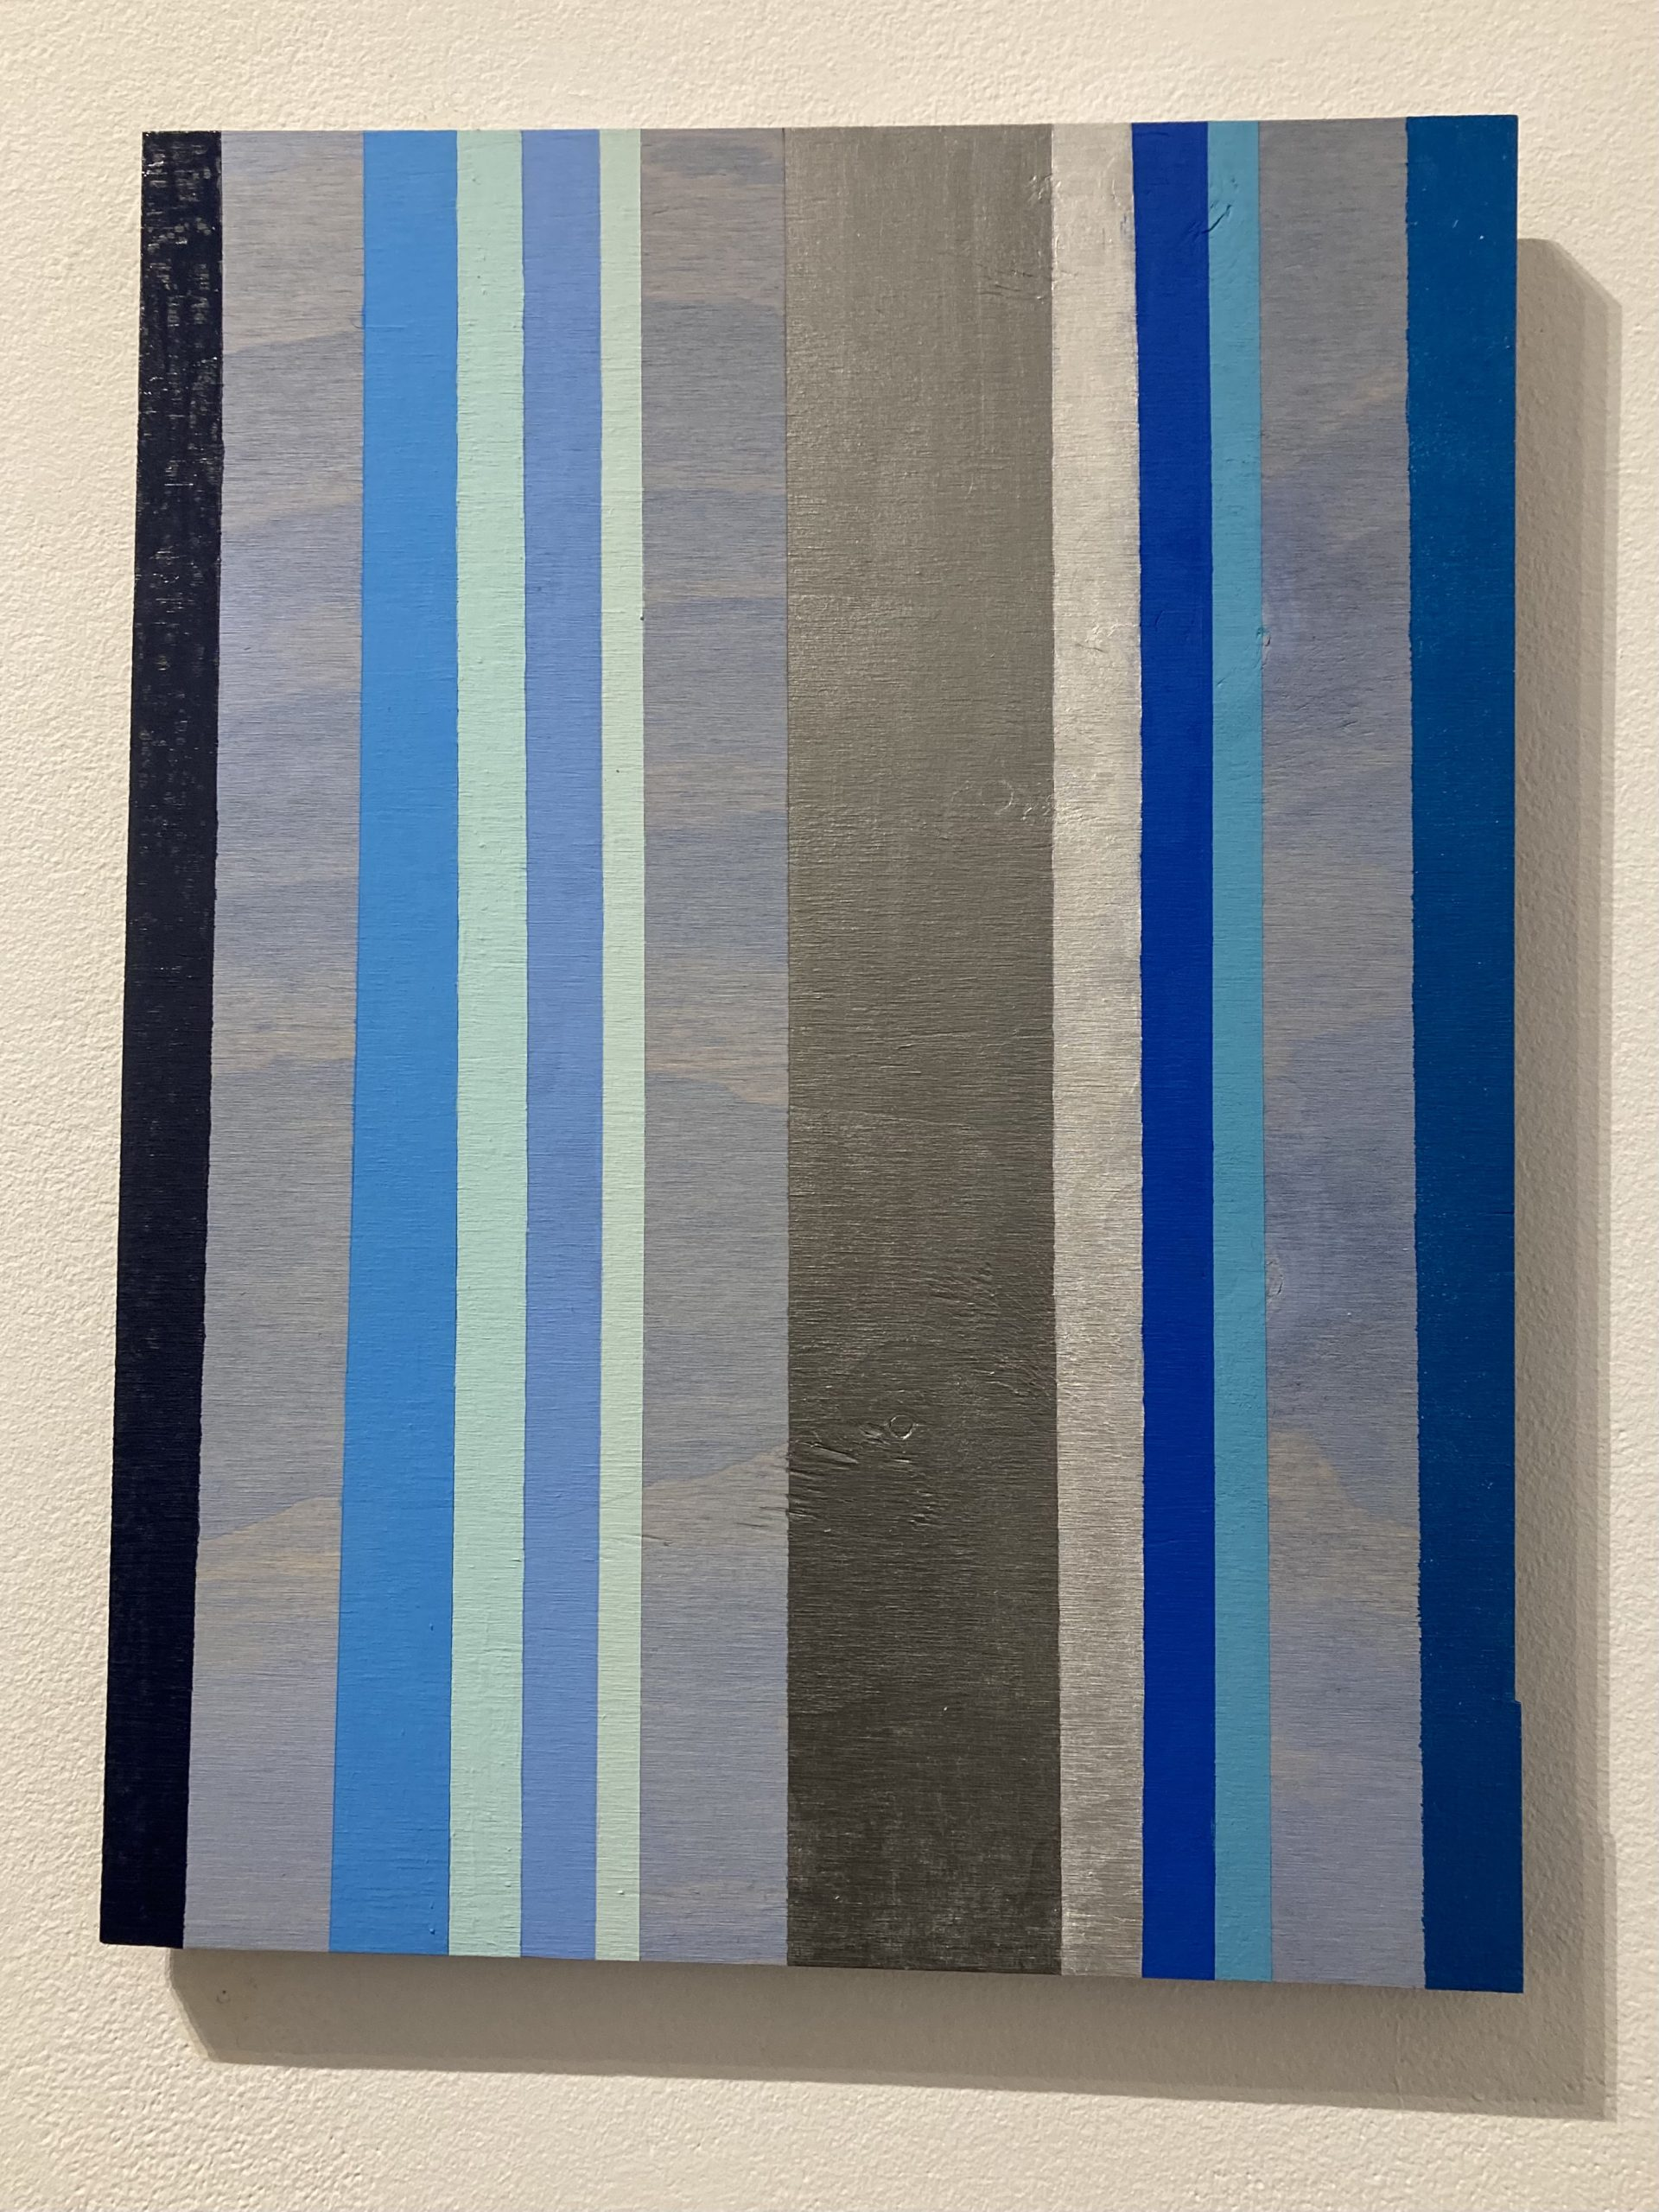 Elizabeth Goodnow  -  Be Blue   -  reconstituted board & old latex paint  -  24 x 18  -  $500.00